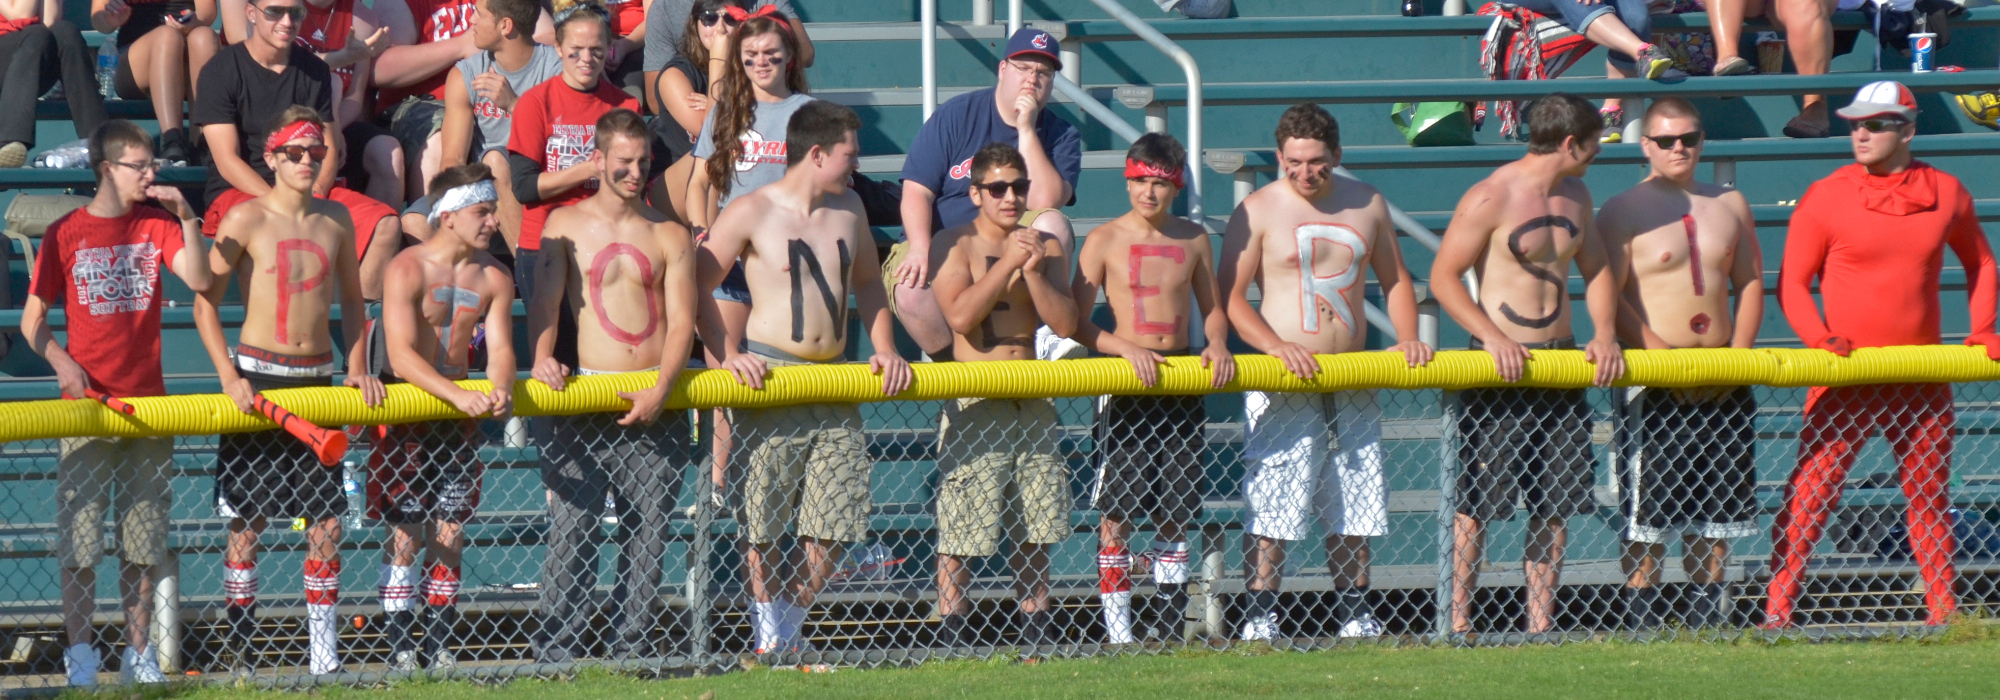 . Jeff Forman/JForman@News-Herald.com Elyria fans spell out Pioneers as they cheer their team in the state semifinal game June 5 at Firestone Stadium in Akron.